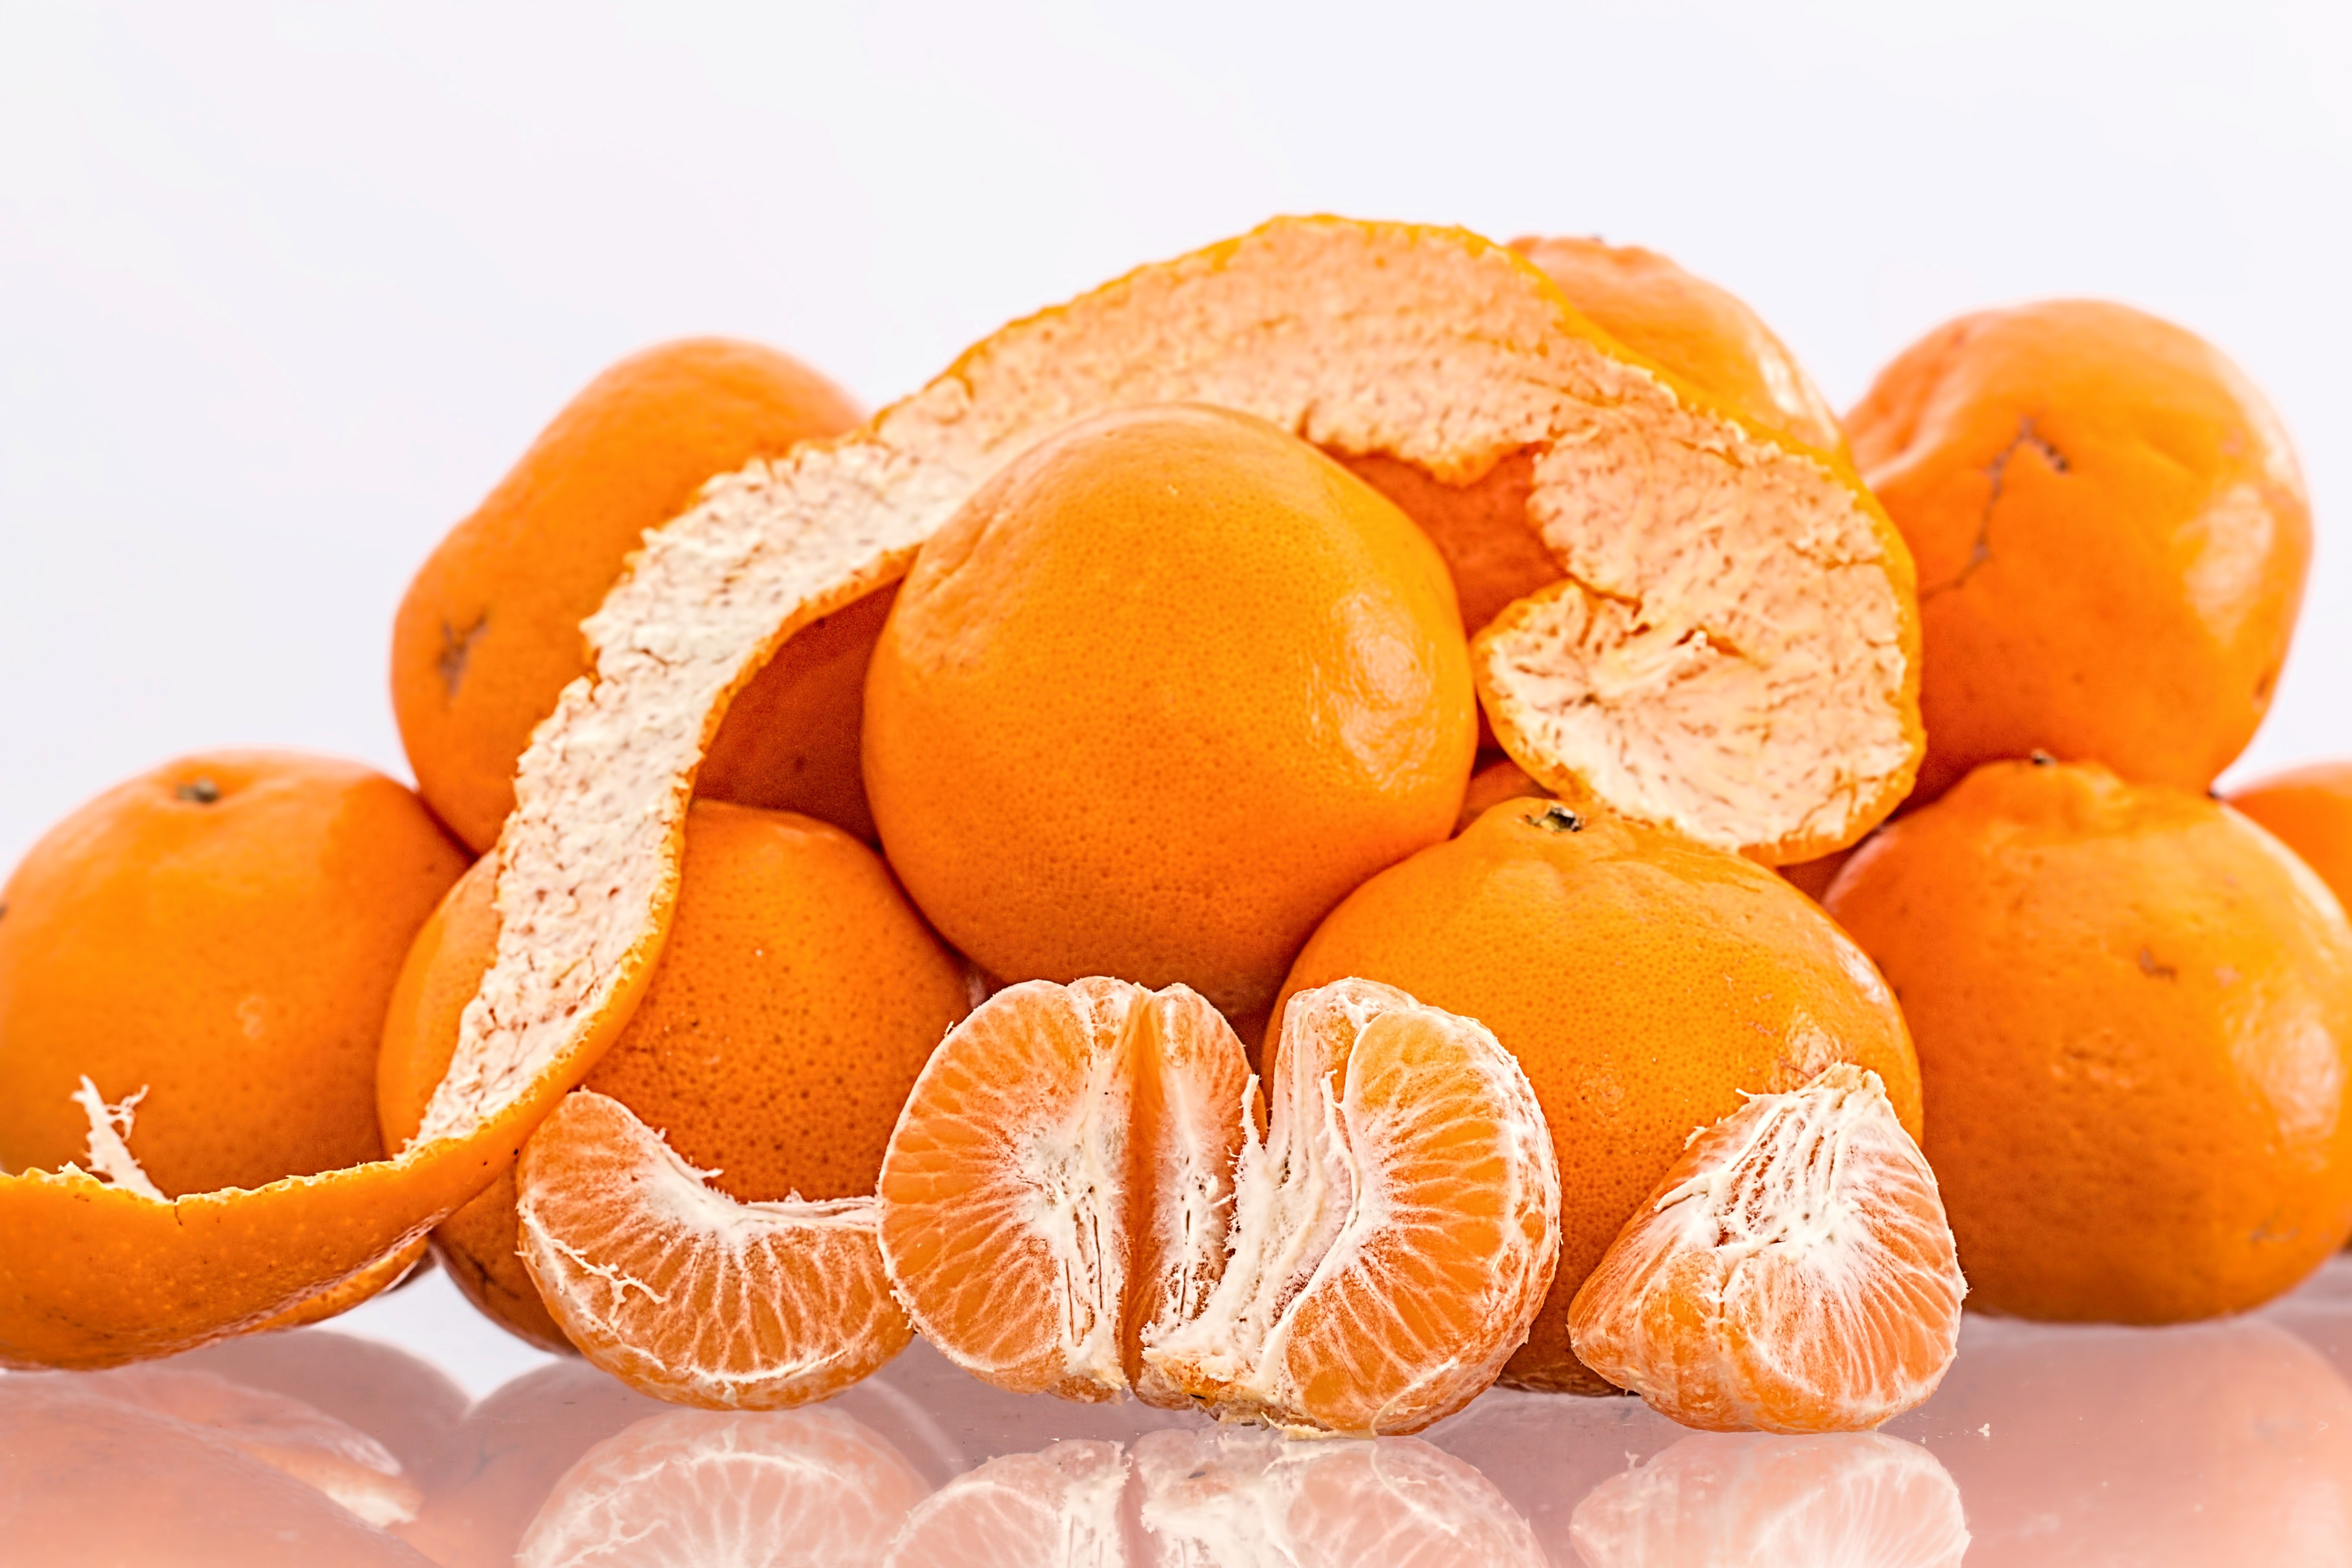 Oranges on Clear Table, Citrus, Delicious, Food, Fruit, HQ Photo